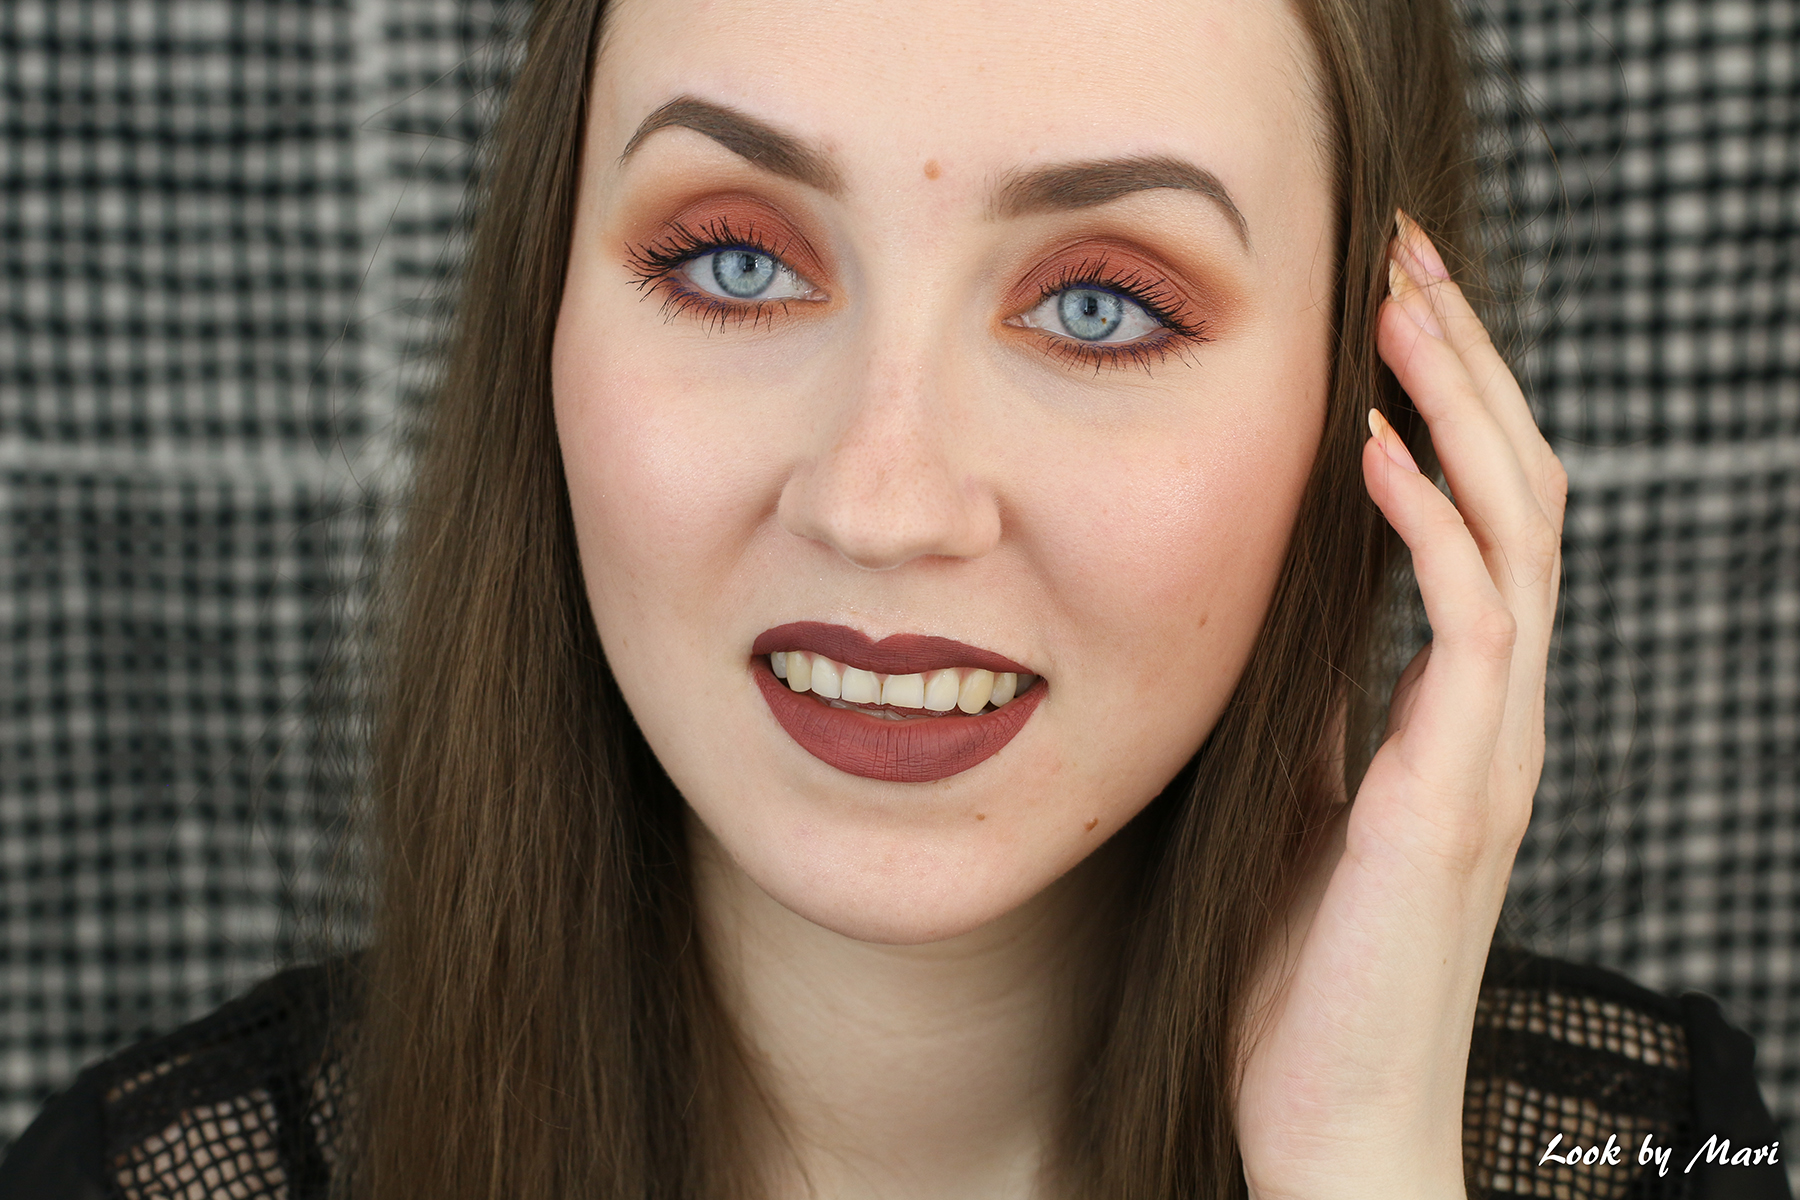 2 anastasia beverly hills brow definer medium brown review swatches swatch color pale skin